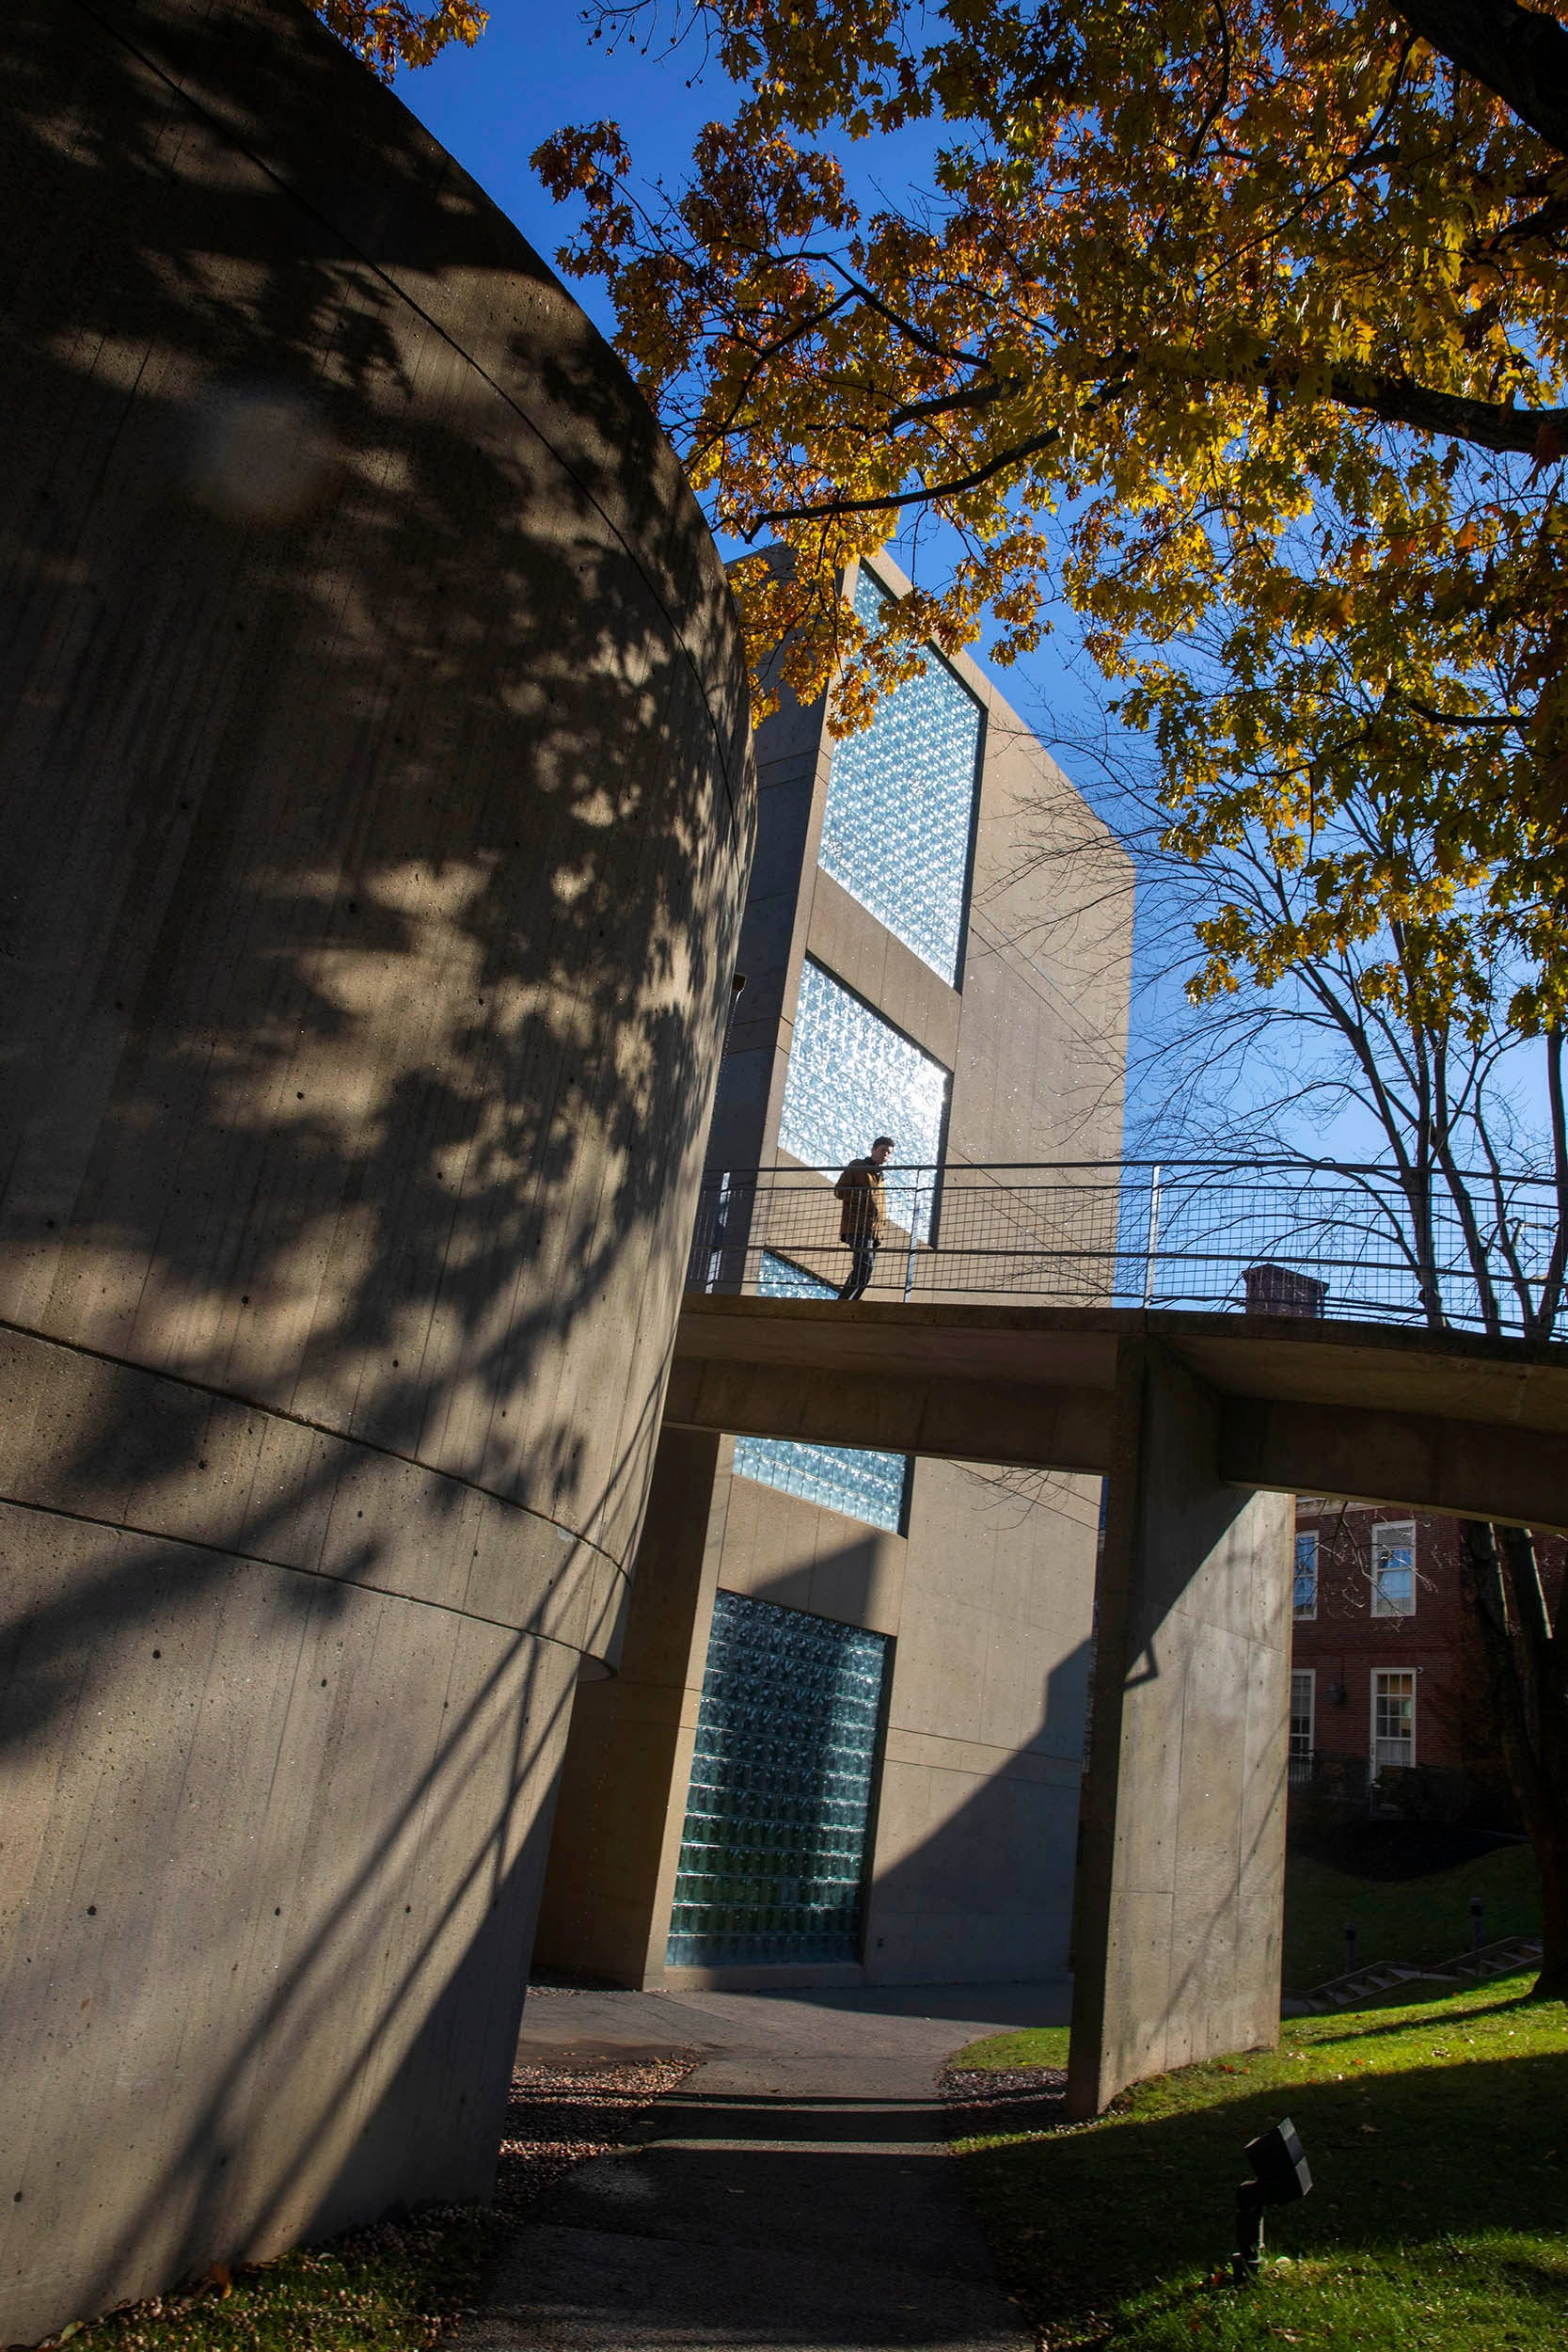 The Carpenter Center ramp offers a scenic passageway for a student crossing beneath the fall foliage.